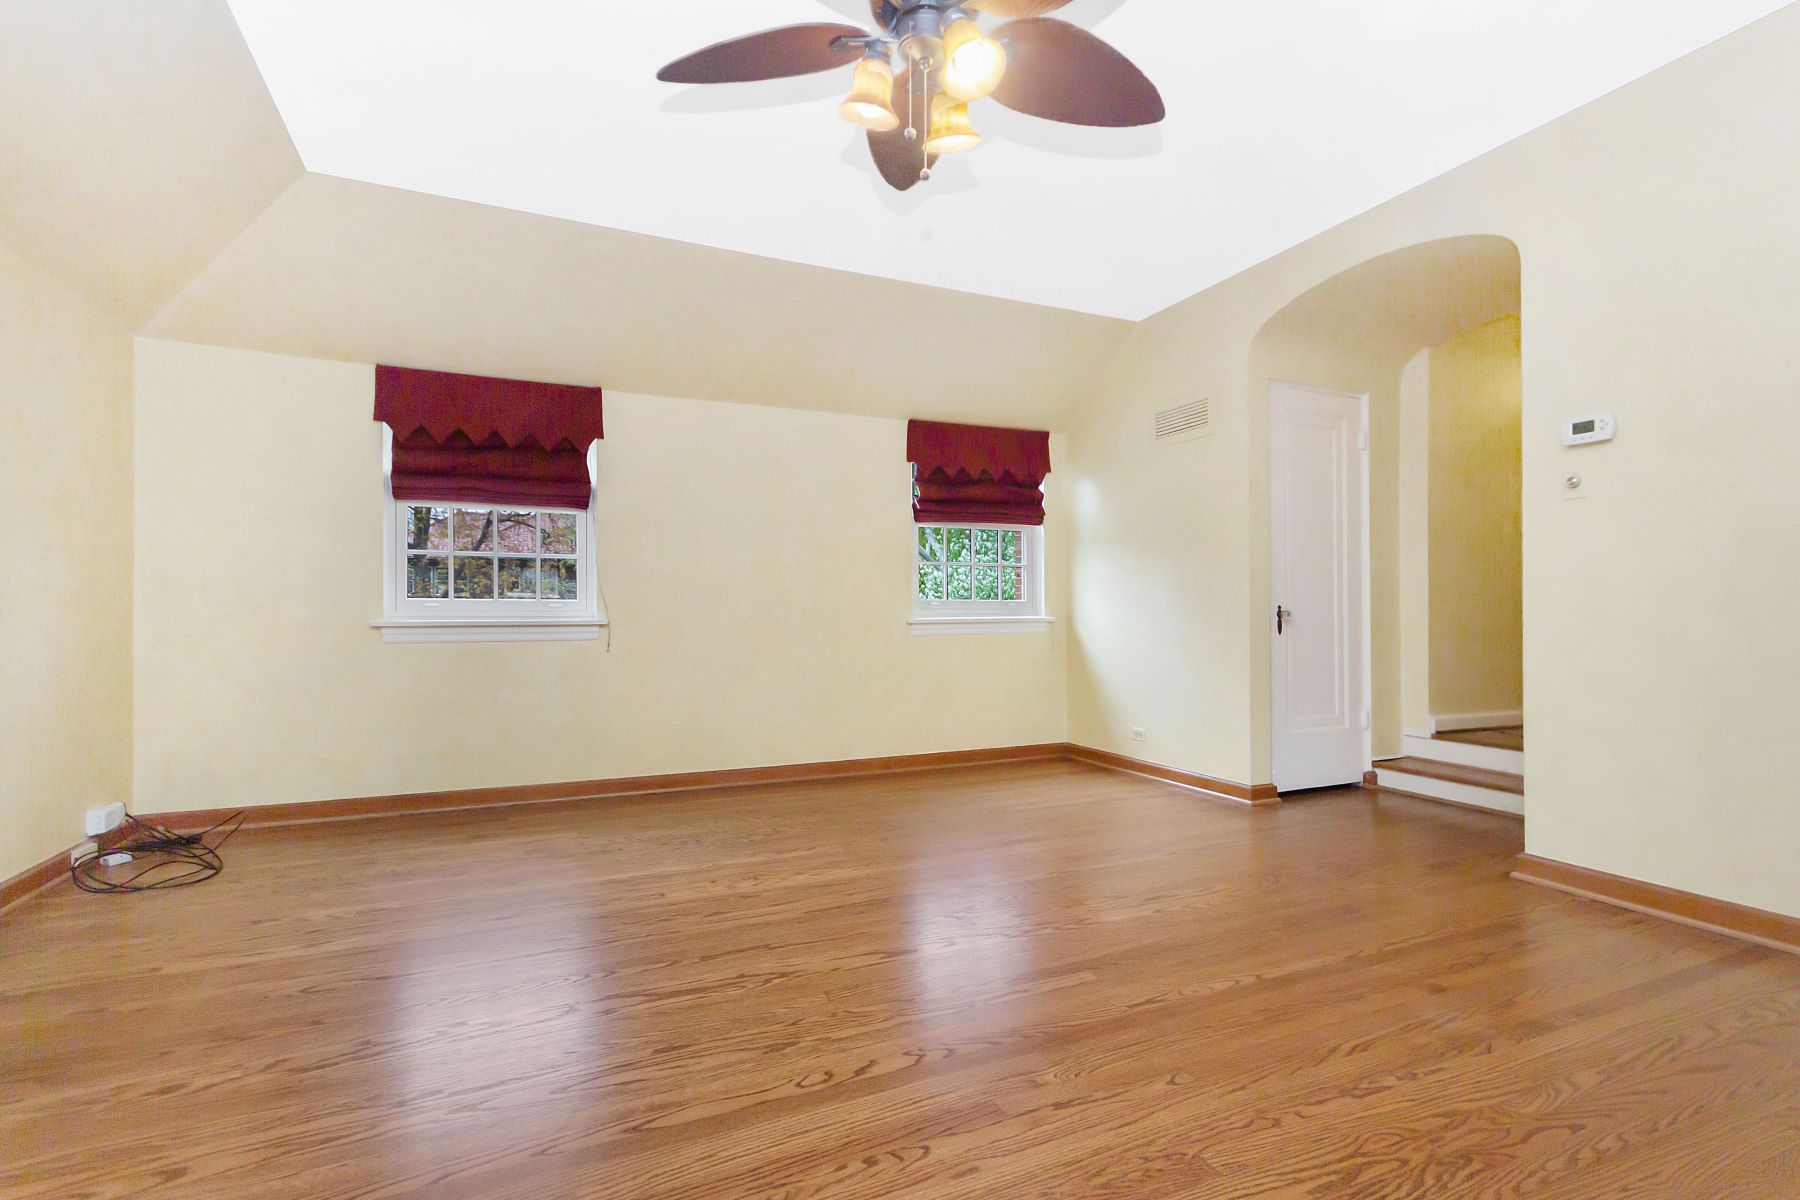 Additional photo for property listing at Beautifully updated and Maintained Brick Home 754 Bonnie Brae Place River Forest, Illinois 60305 United States